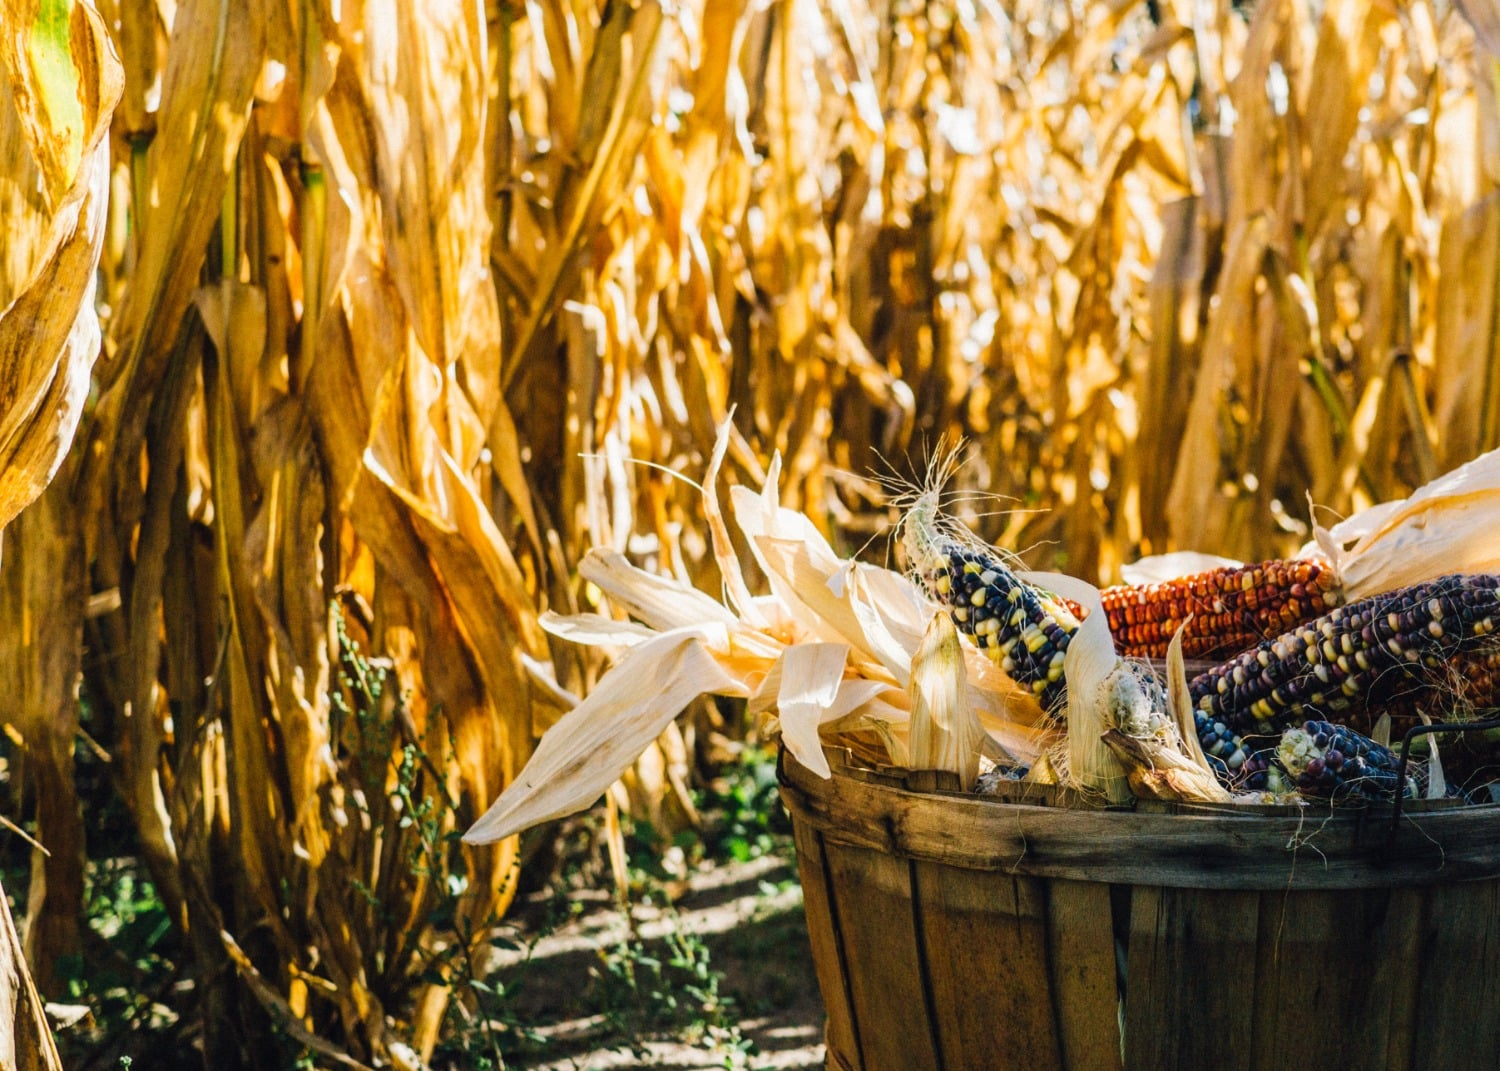 corn in wood barrel in foreground, dry corn stalks in background